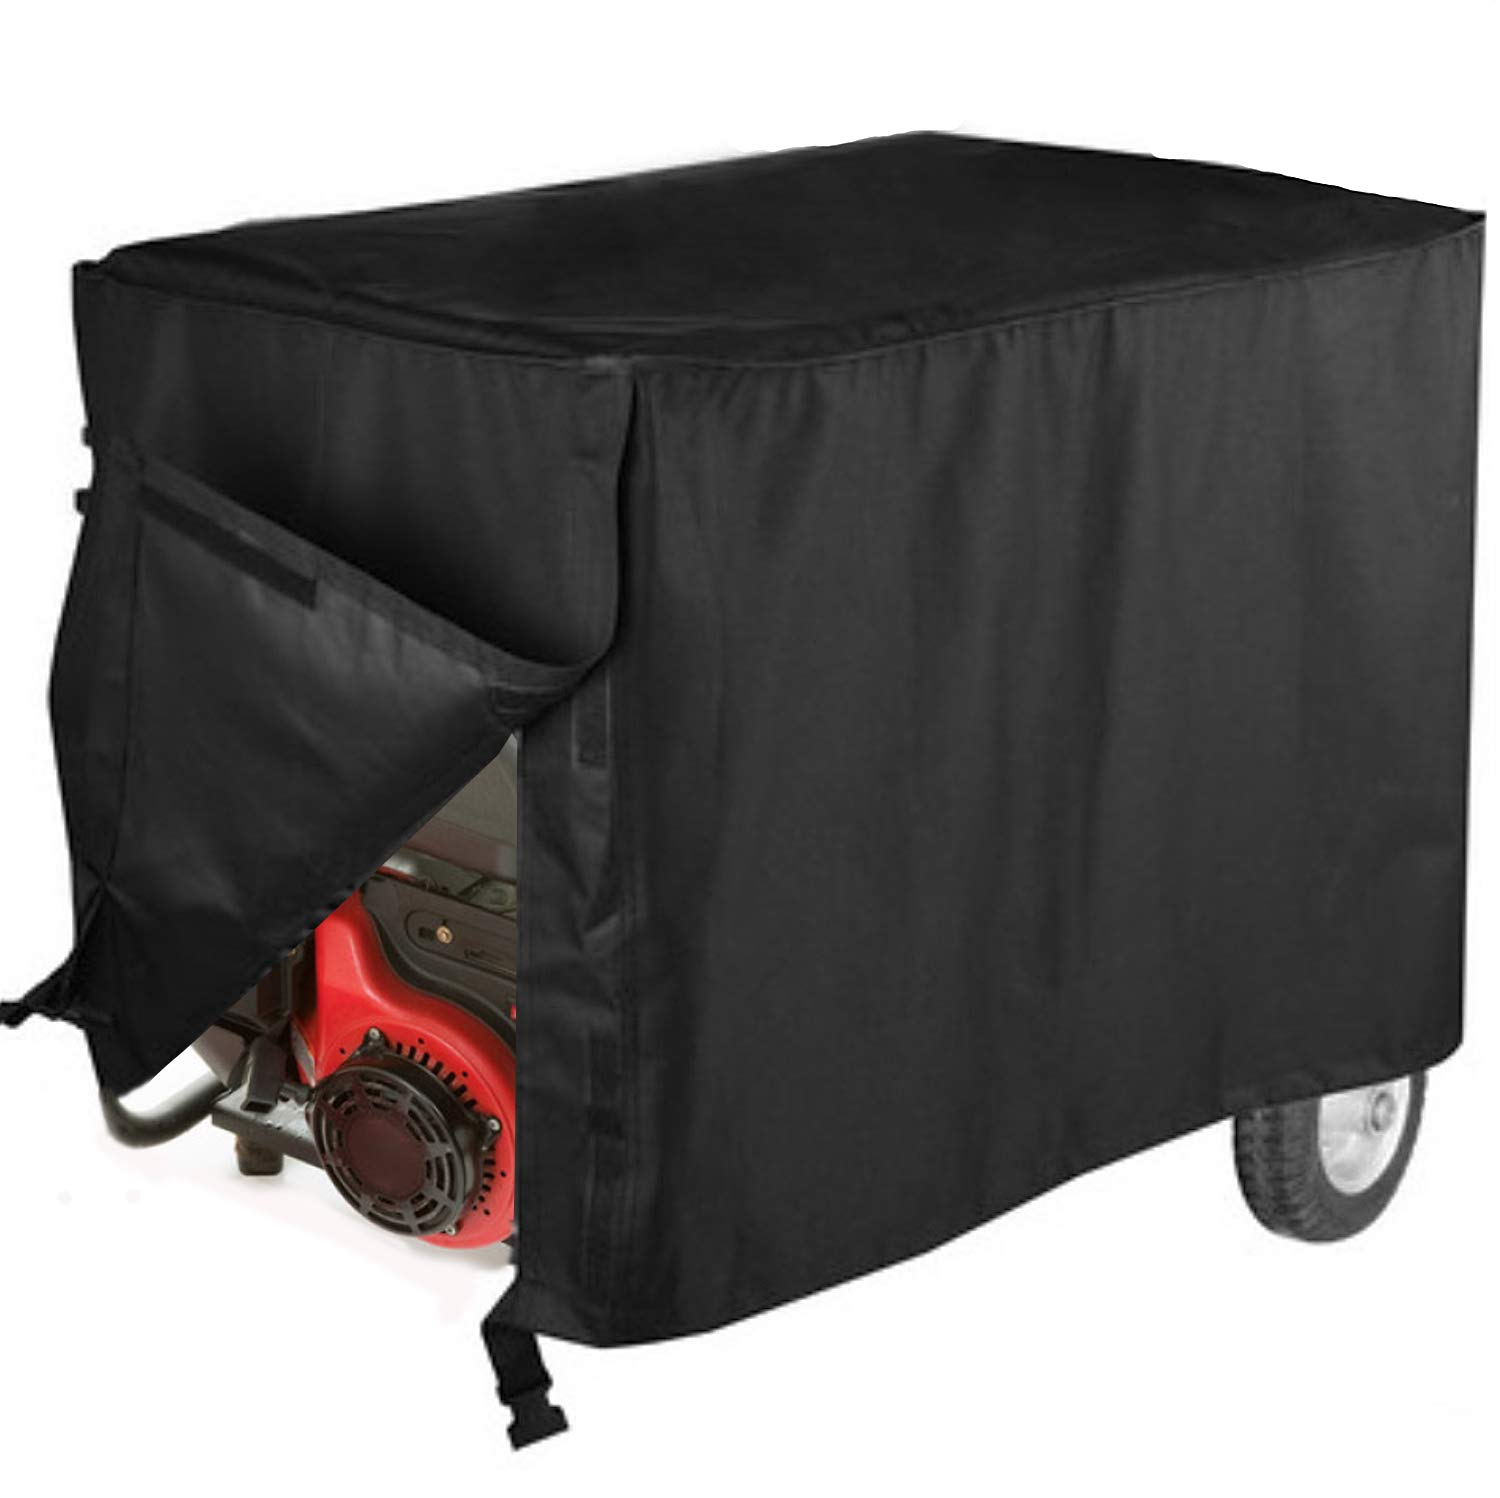 Yqbuy Universal Generator Waterproof Cover - 600D Heavy Duty Polyester Generator Cover for Most Generators, Black (32'' L x 24'' W x24 H) by Yqbuy